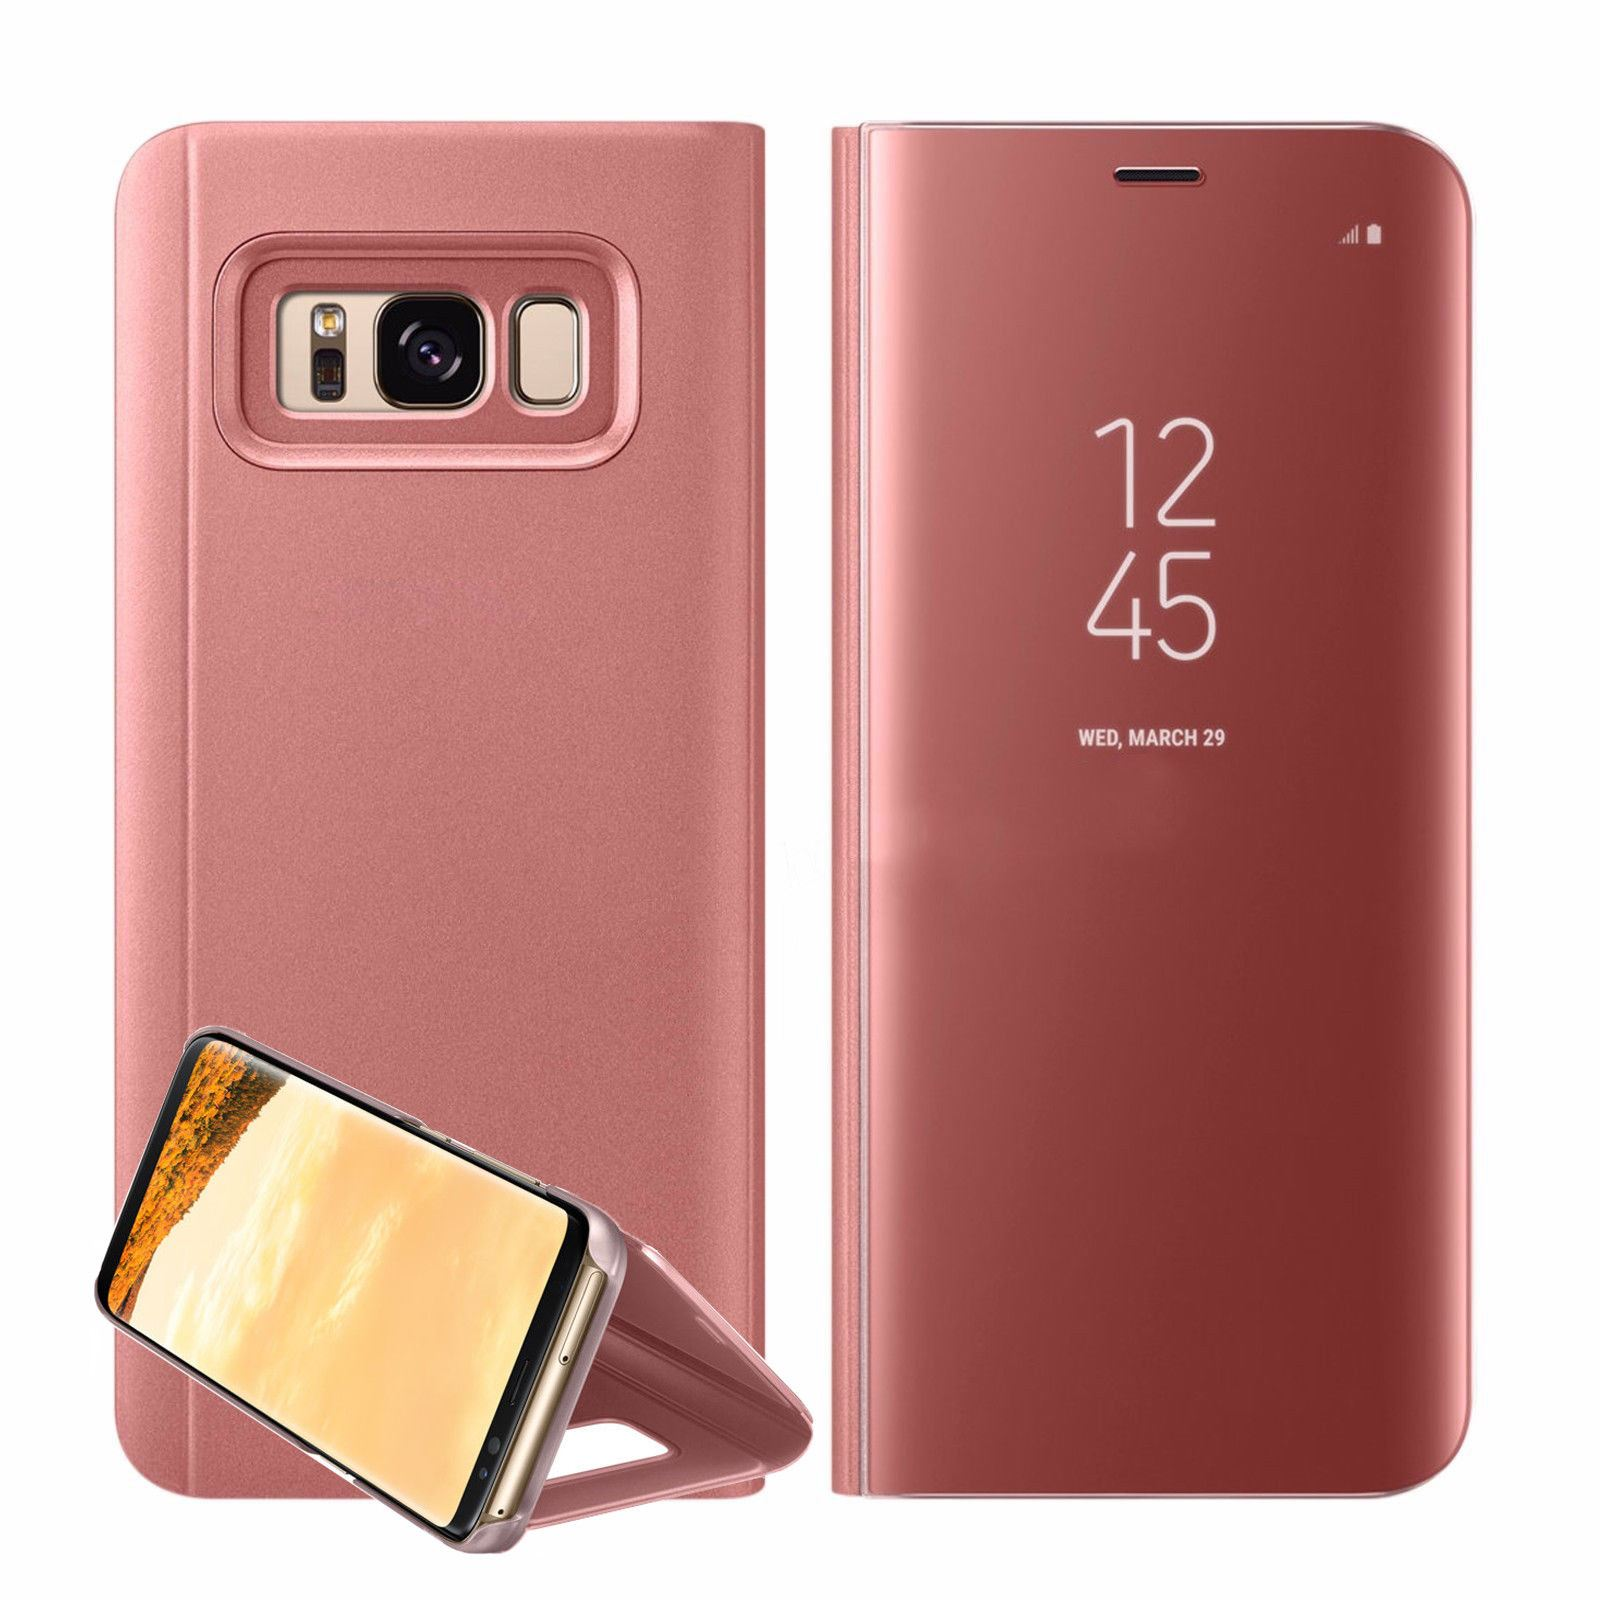 New-Samsung-Galaxy-S8-S9-S10-Smart-View-Mirror-Leather-Flip-Stand-Case-Cover thumbnail 24